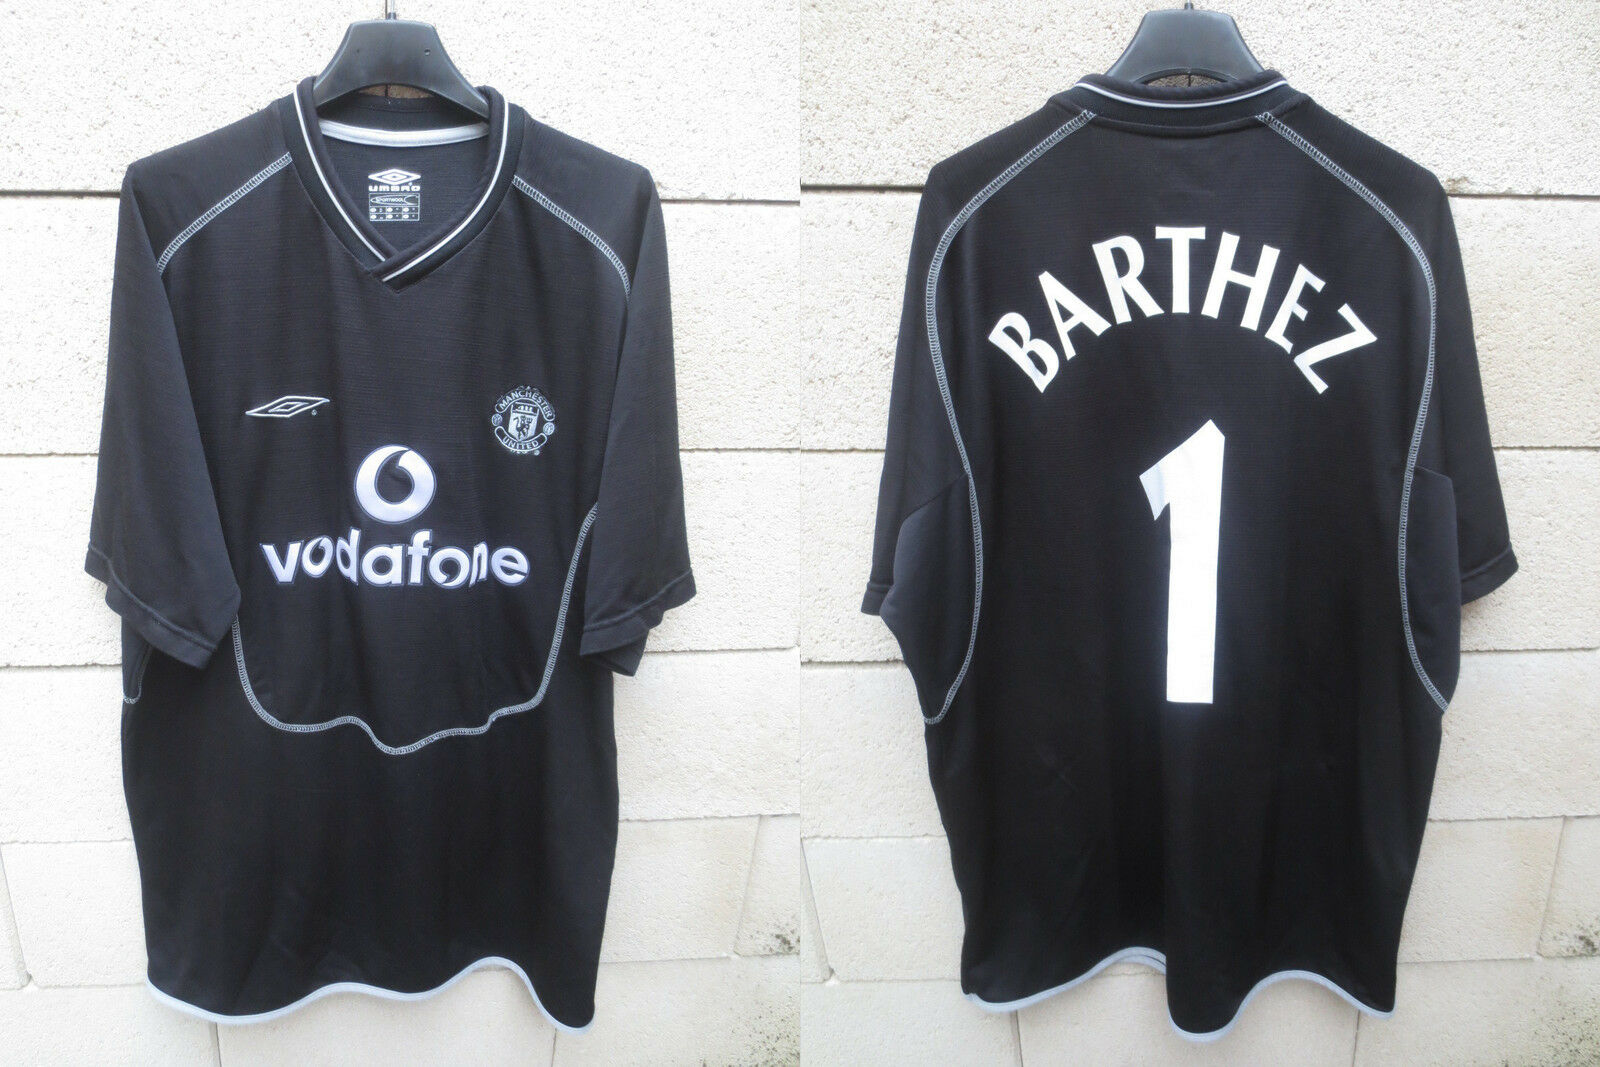 e0f74977322 VINTAGE Maillot Maillot Maillot MANCHESTER UNITED goal BARTHEZ n°1 NIKE  2000 2002 shirt XL 9f879f